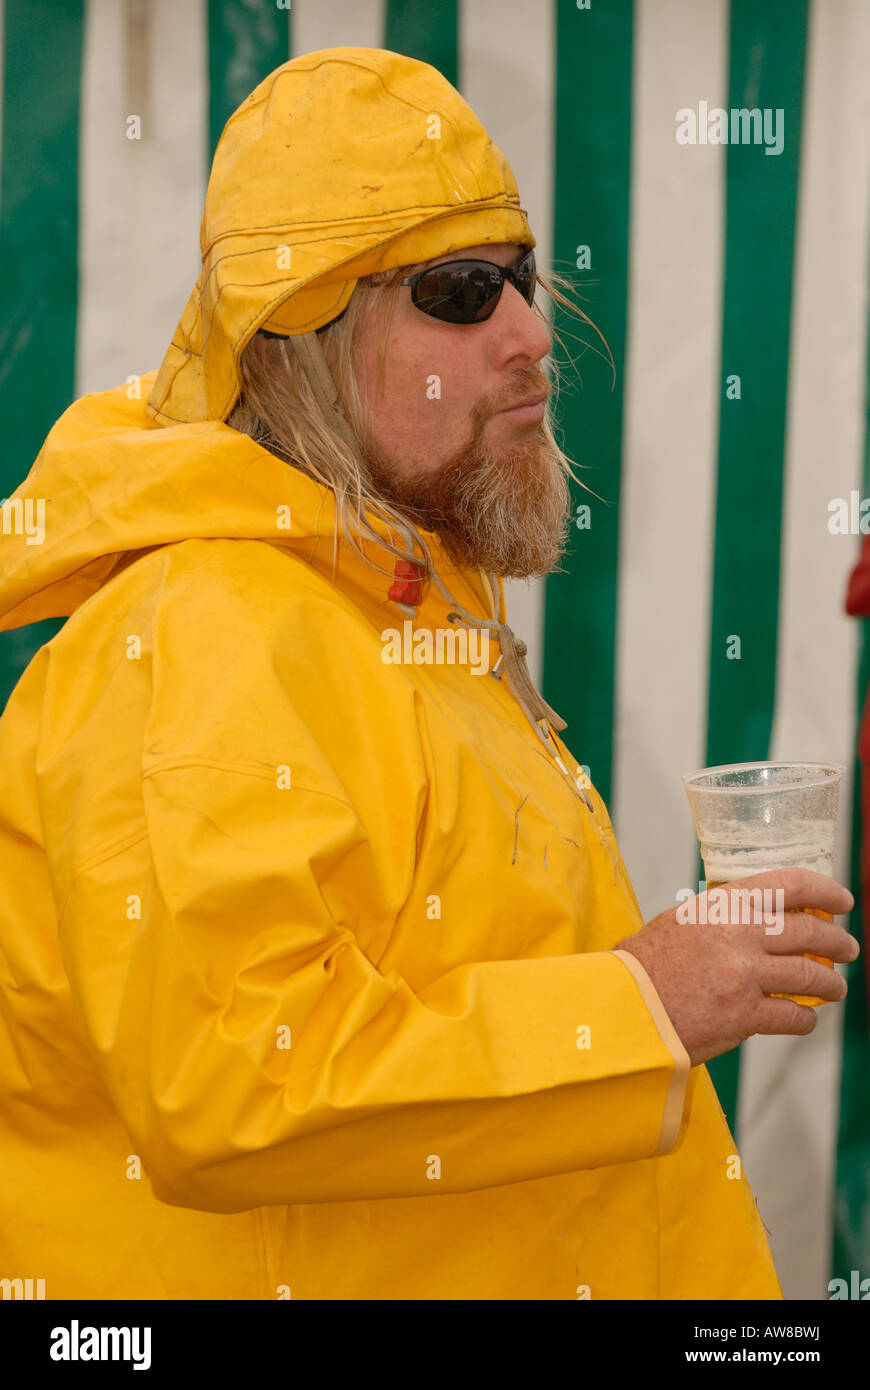 a hairy bker rocker dressed in yellow oil skins mutton dressed as lamb a wolf in sheeps clothing wearing sunglasses - Stock Image